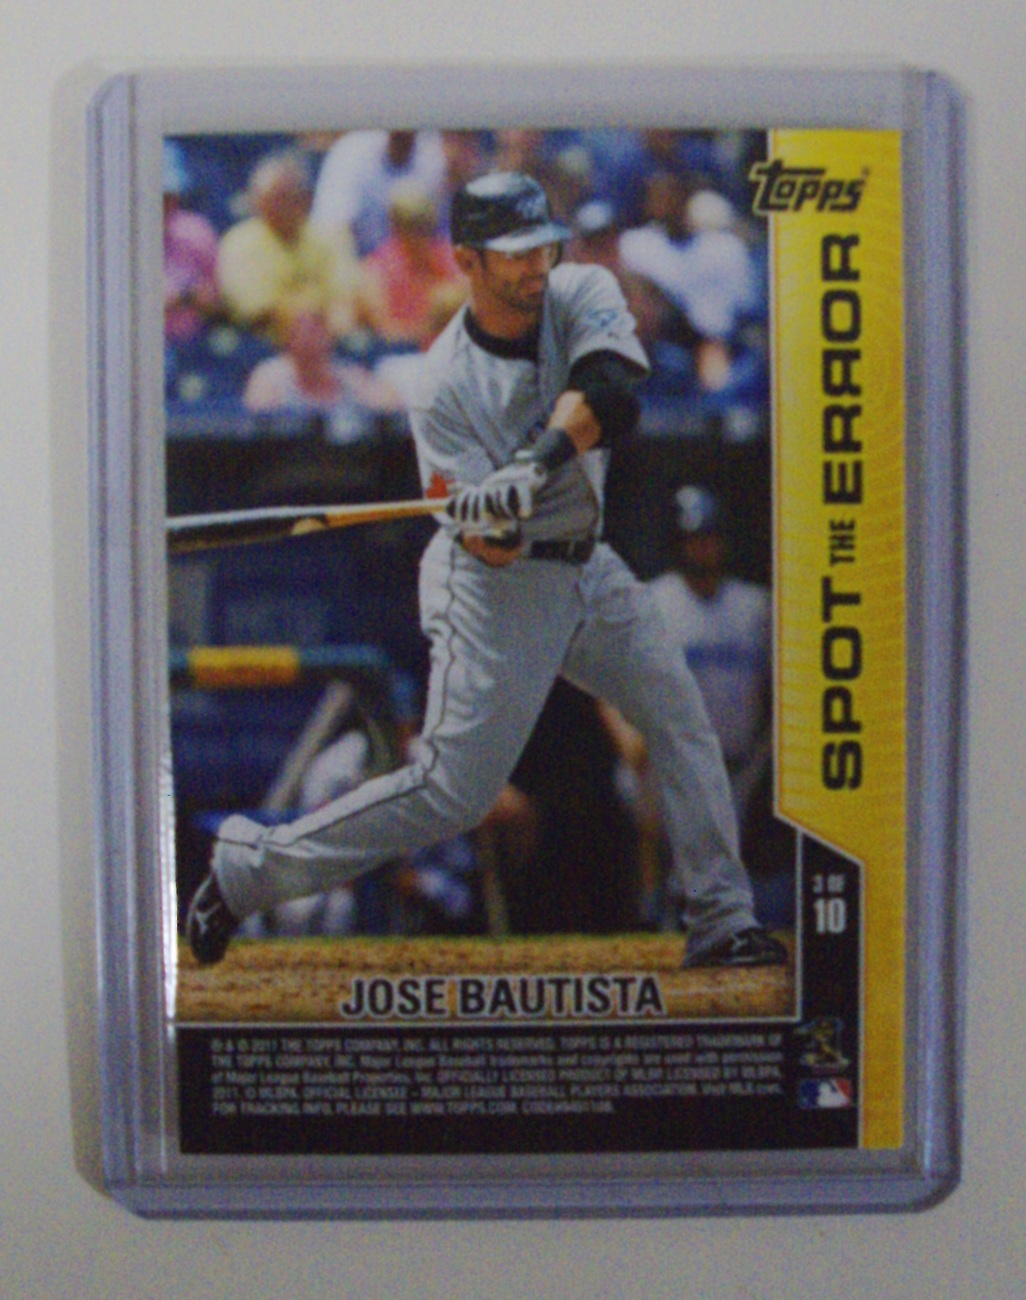 2011 Topps Opening Day Jose Bautista baseball card 3 of 10 Toronto Blue Jays